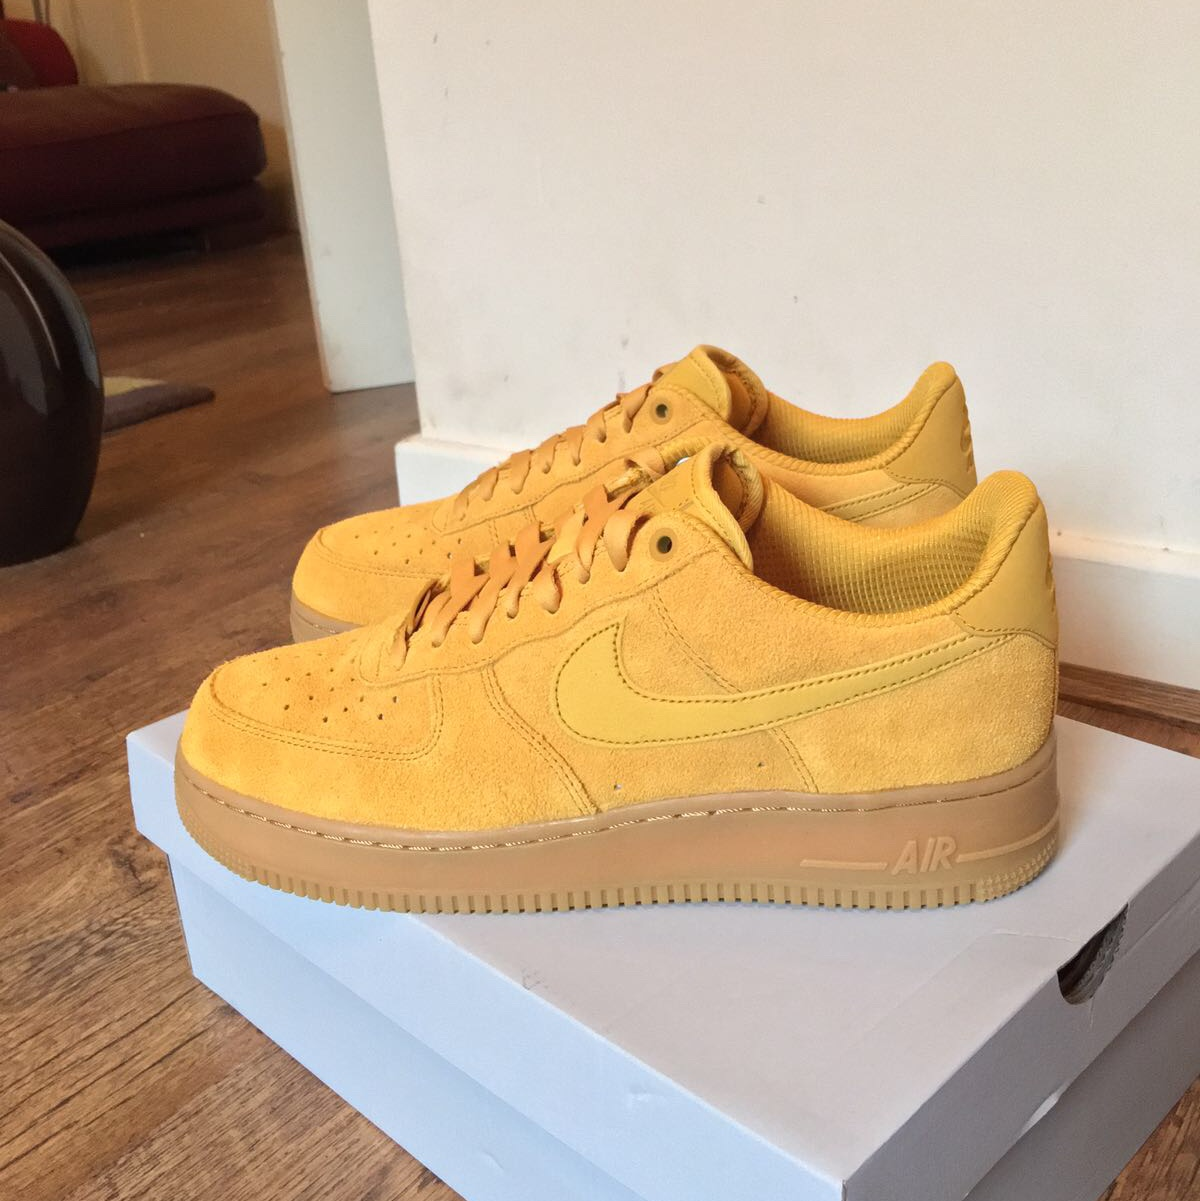 317f9d7eef1cc freshprince_uk. London, United Kingdom. Nike Air Force 1 low /Mustard  yellow Suede / Size 8 Sold out ...